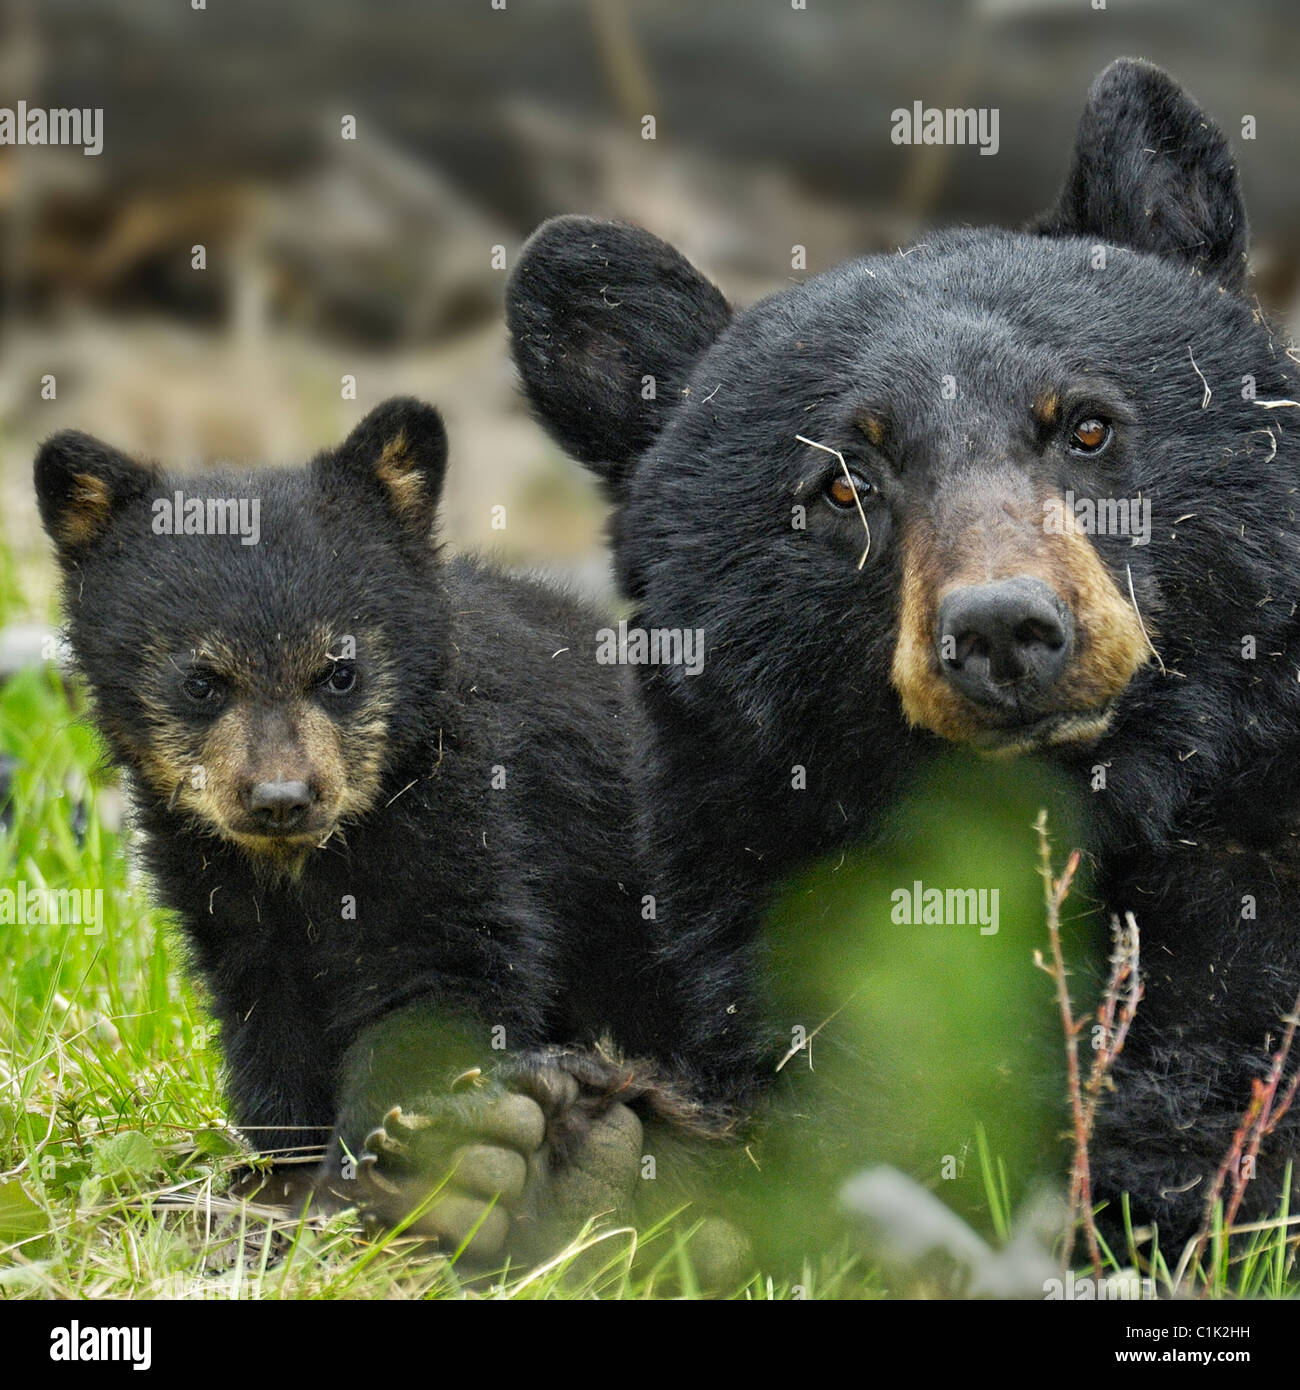 Mother Bear And Baby Bear Stock Photo, Royalty Free Image